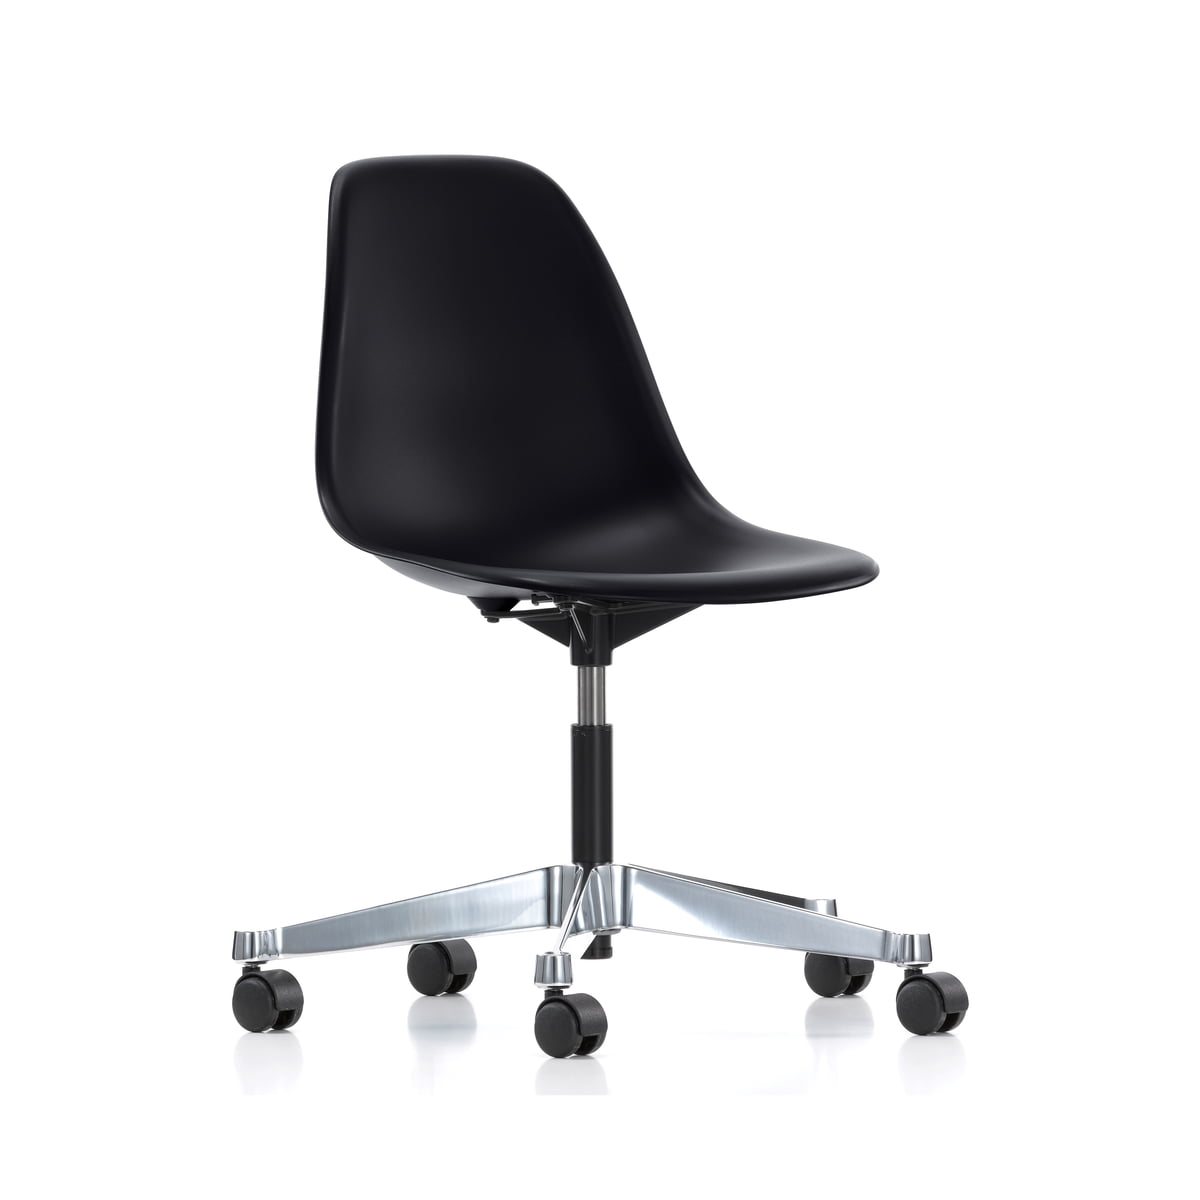 Vitra   Eames Plastic Side Chair PSCC